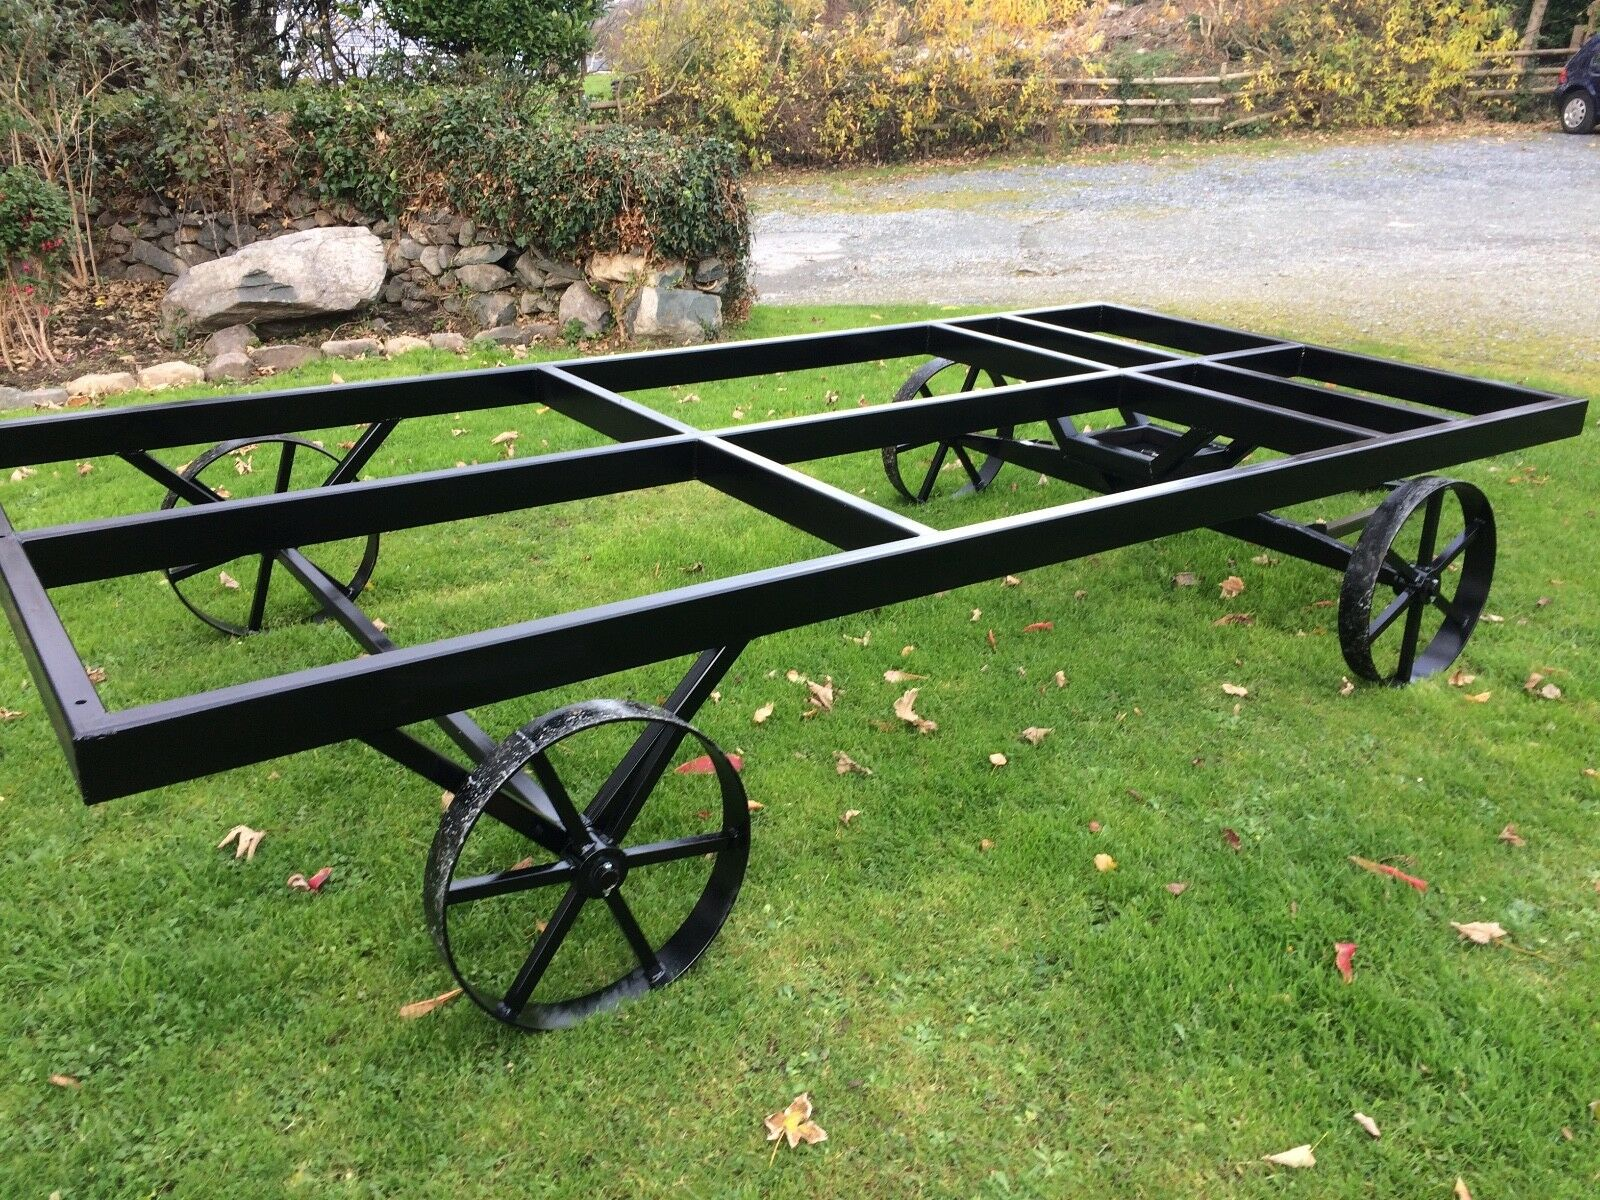 STF black painted chassis